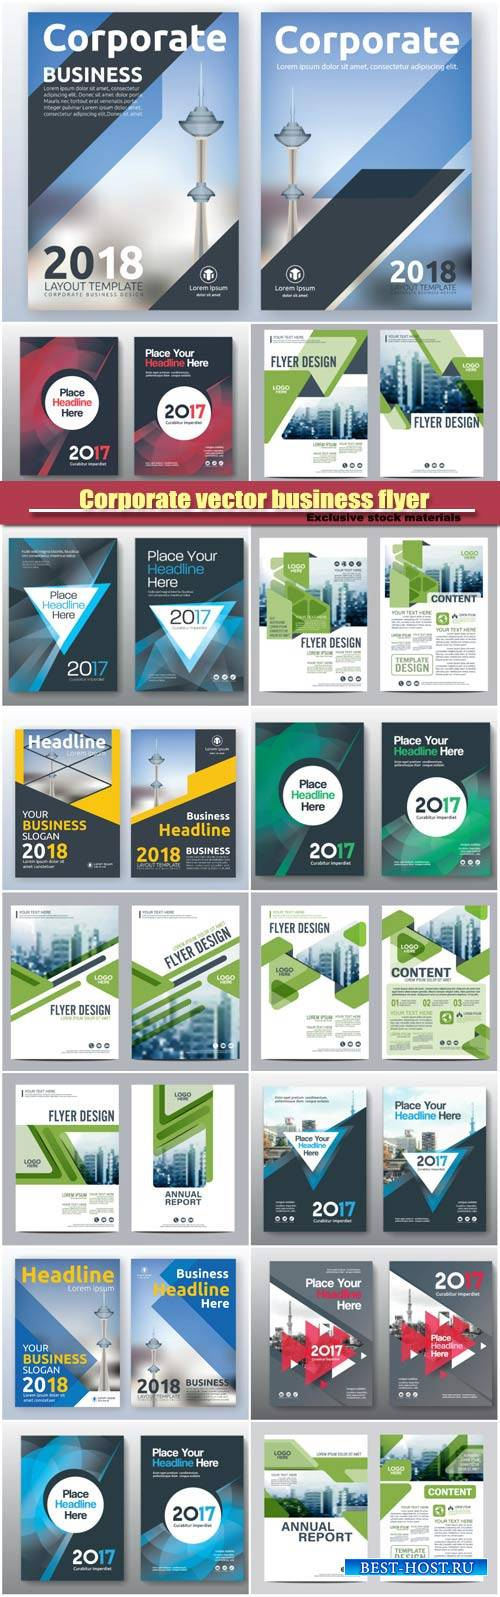 Corporate vector business flyer layout templates design, brochure, book cov ...